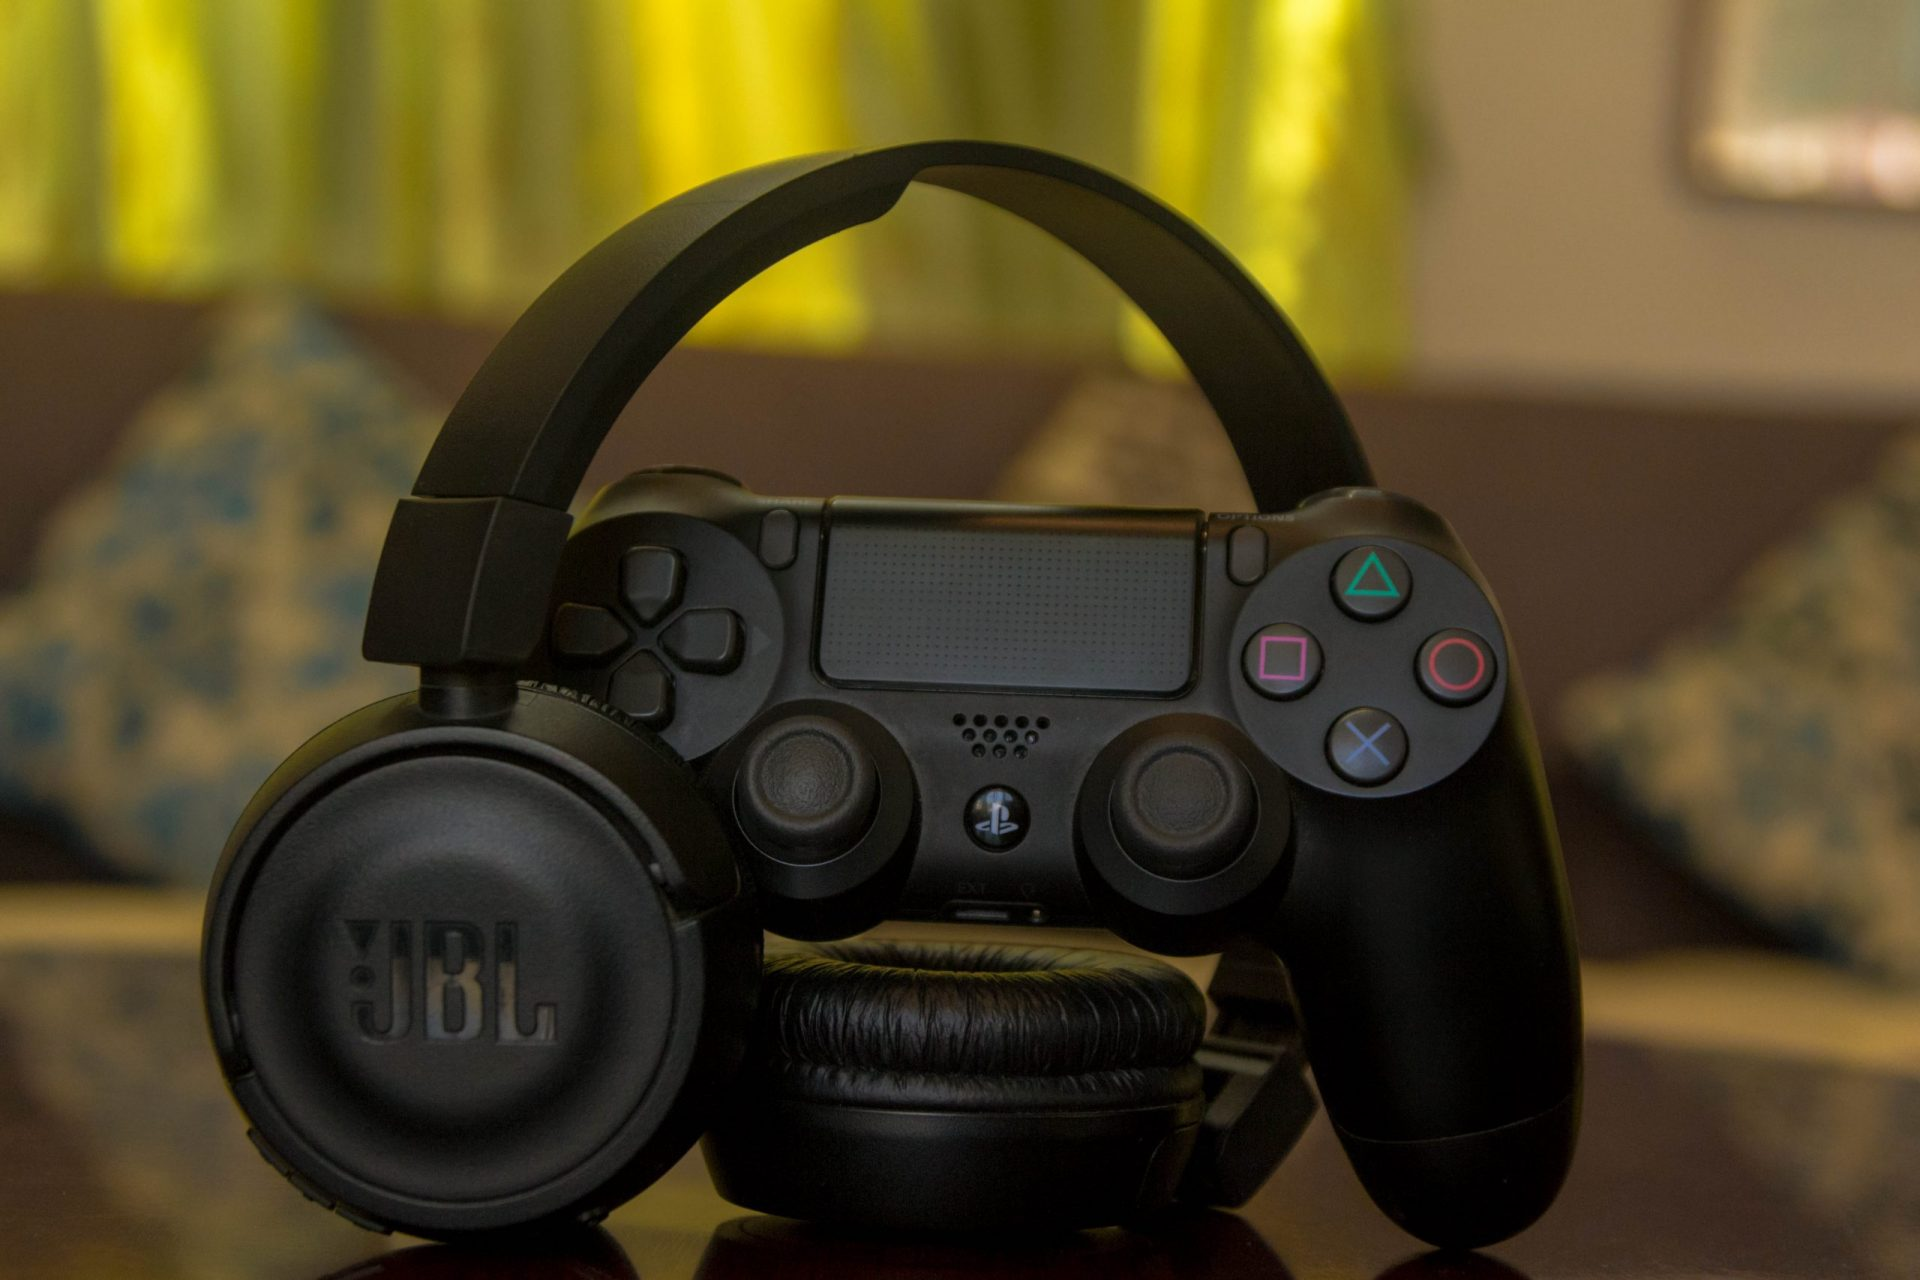 Best gaming headsets under $30